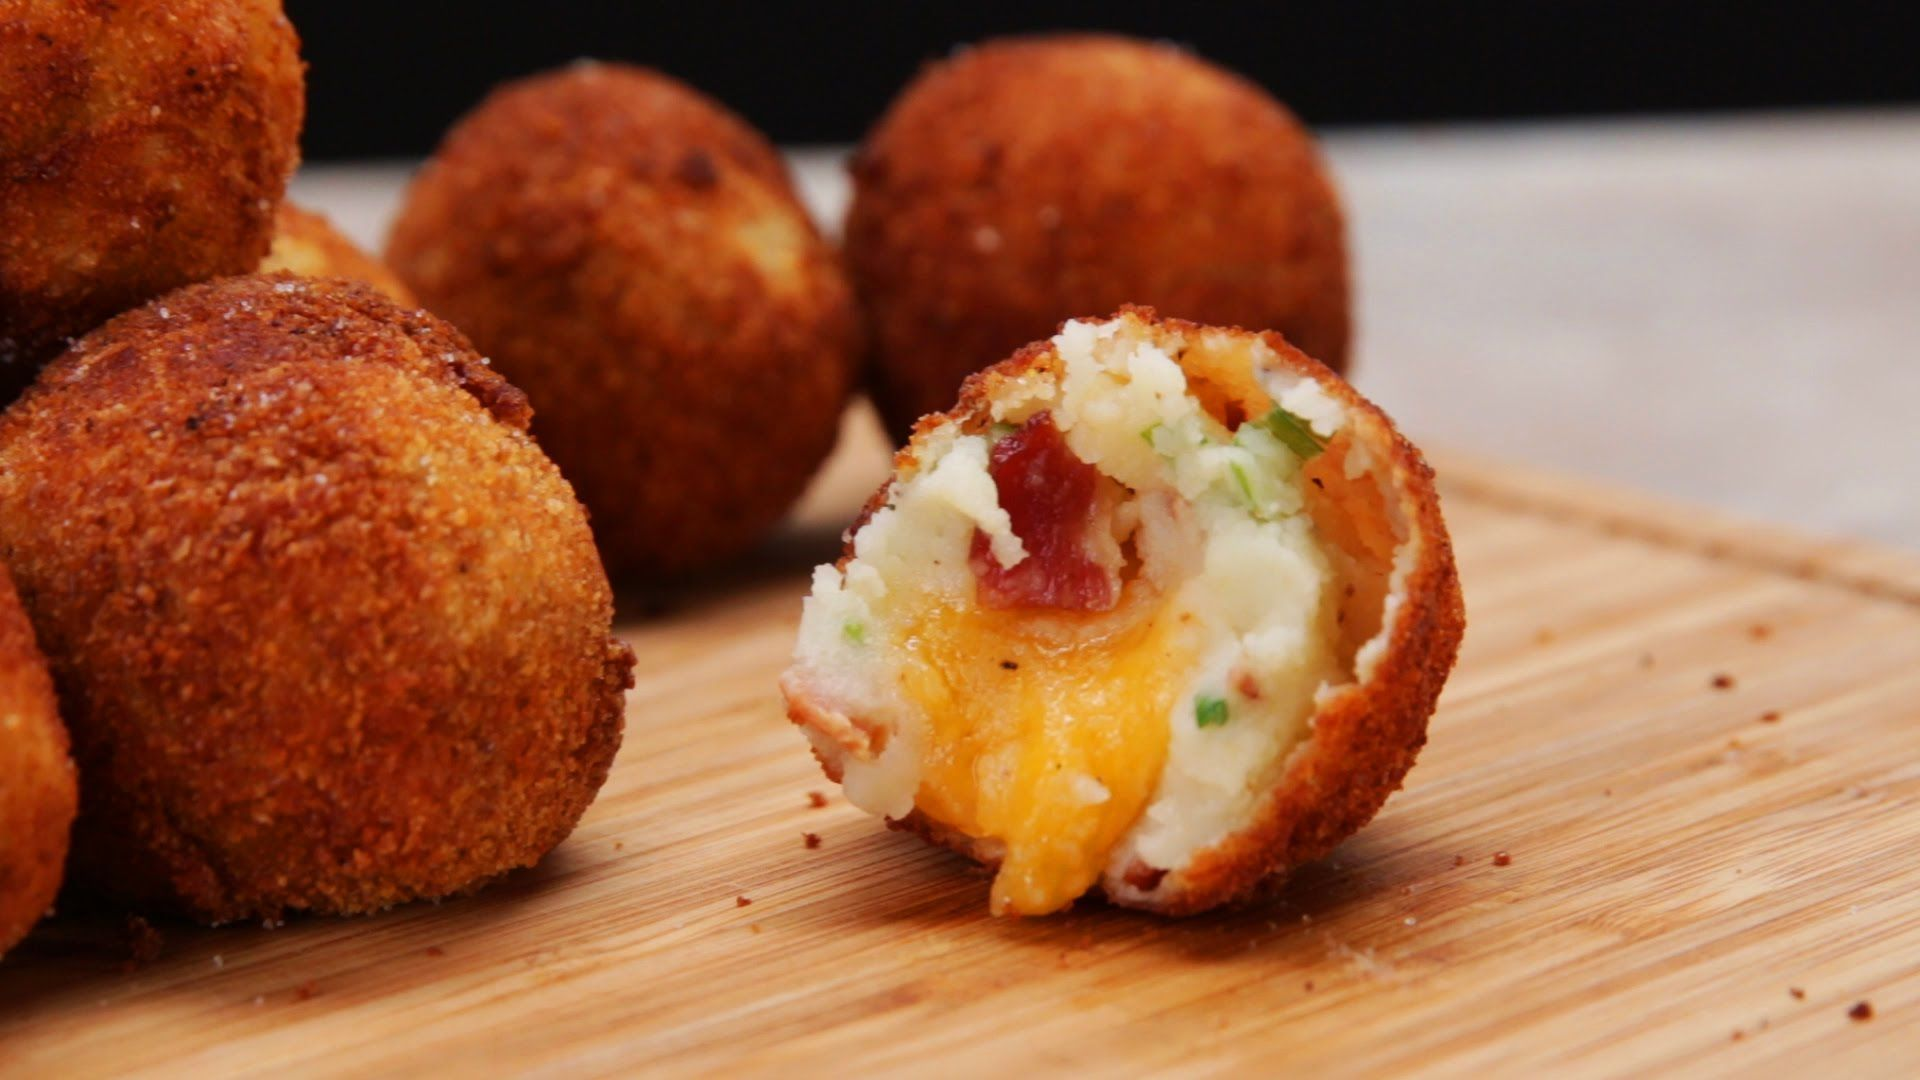 CHEESE-STUFFED MASHED POTATO BALLS